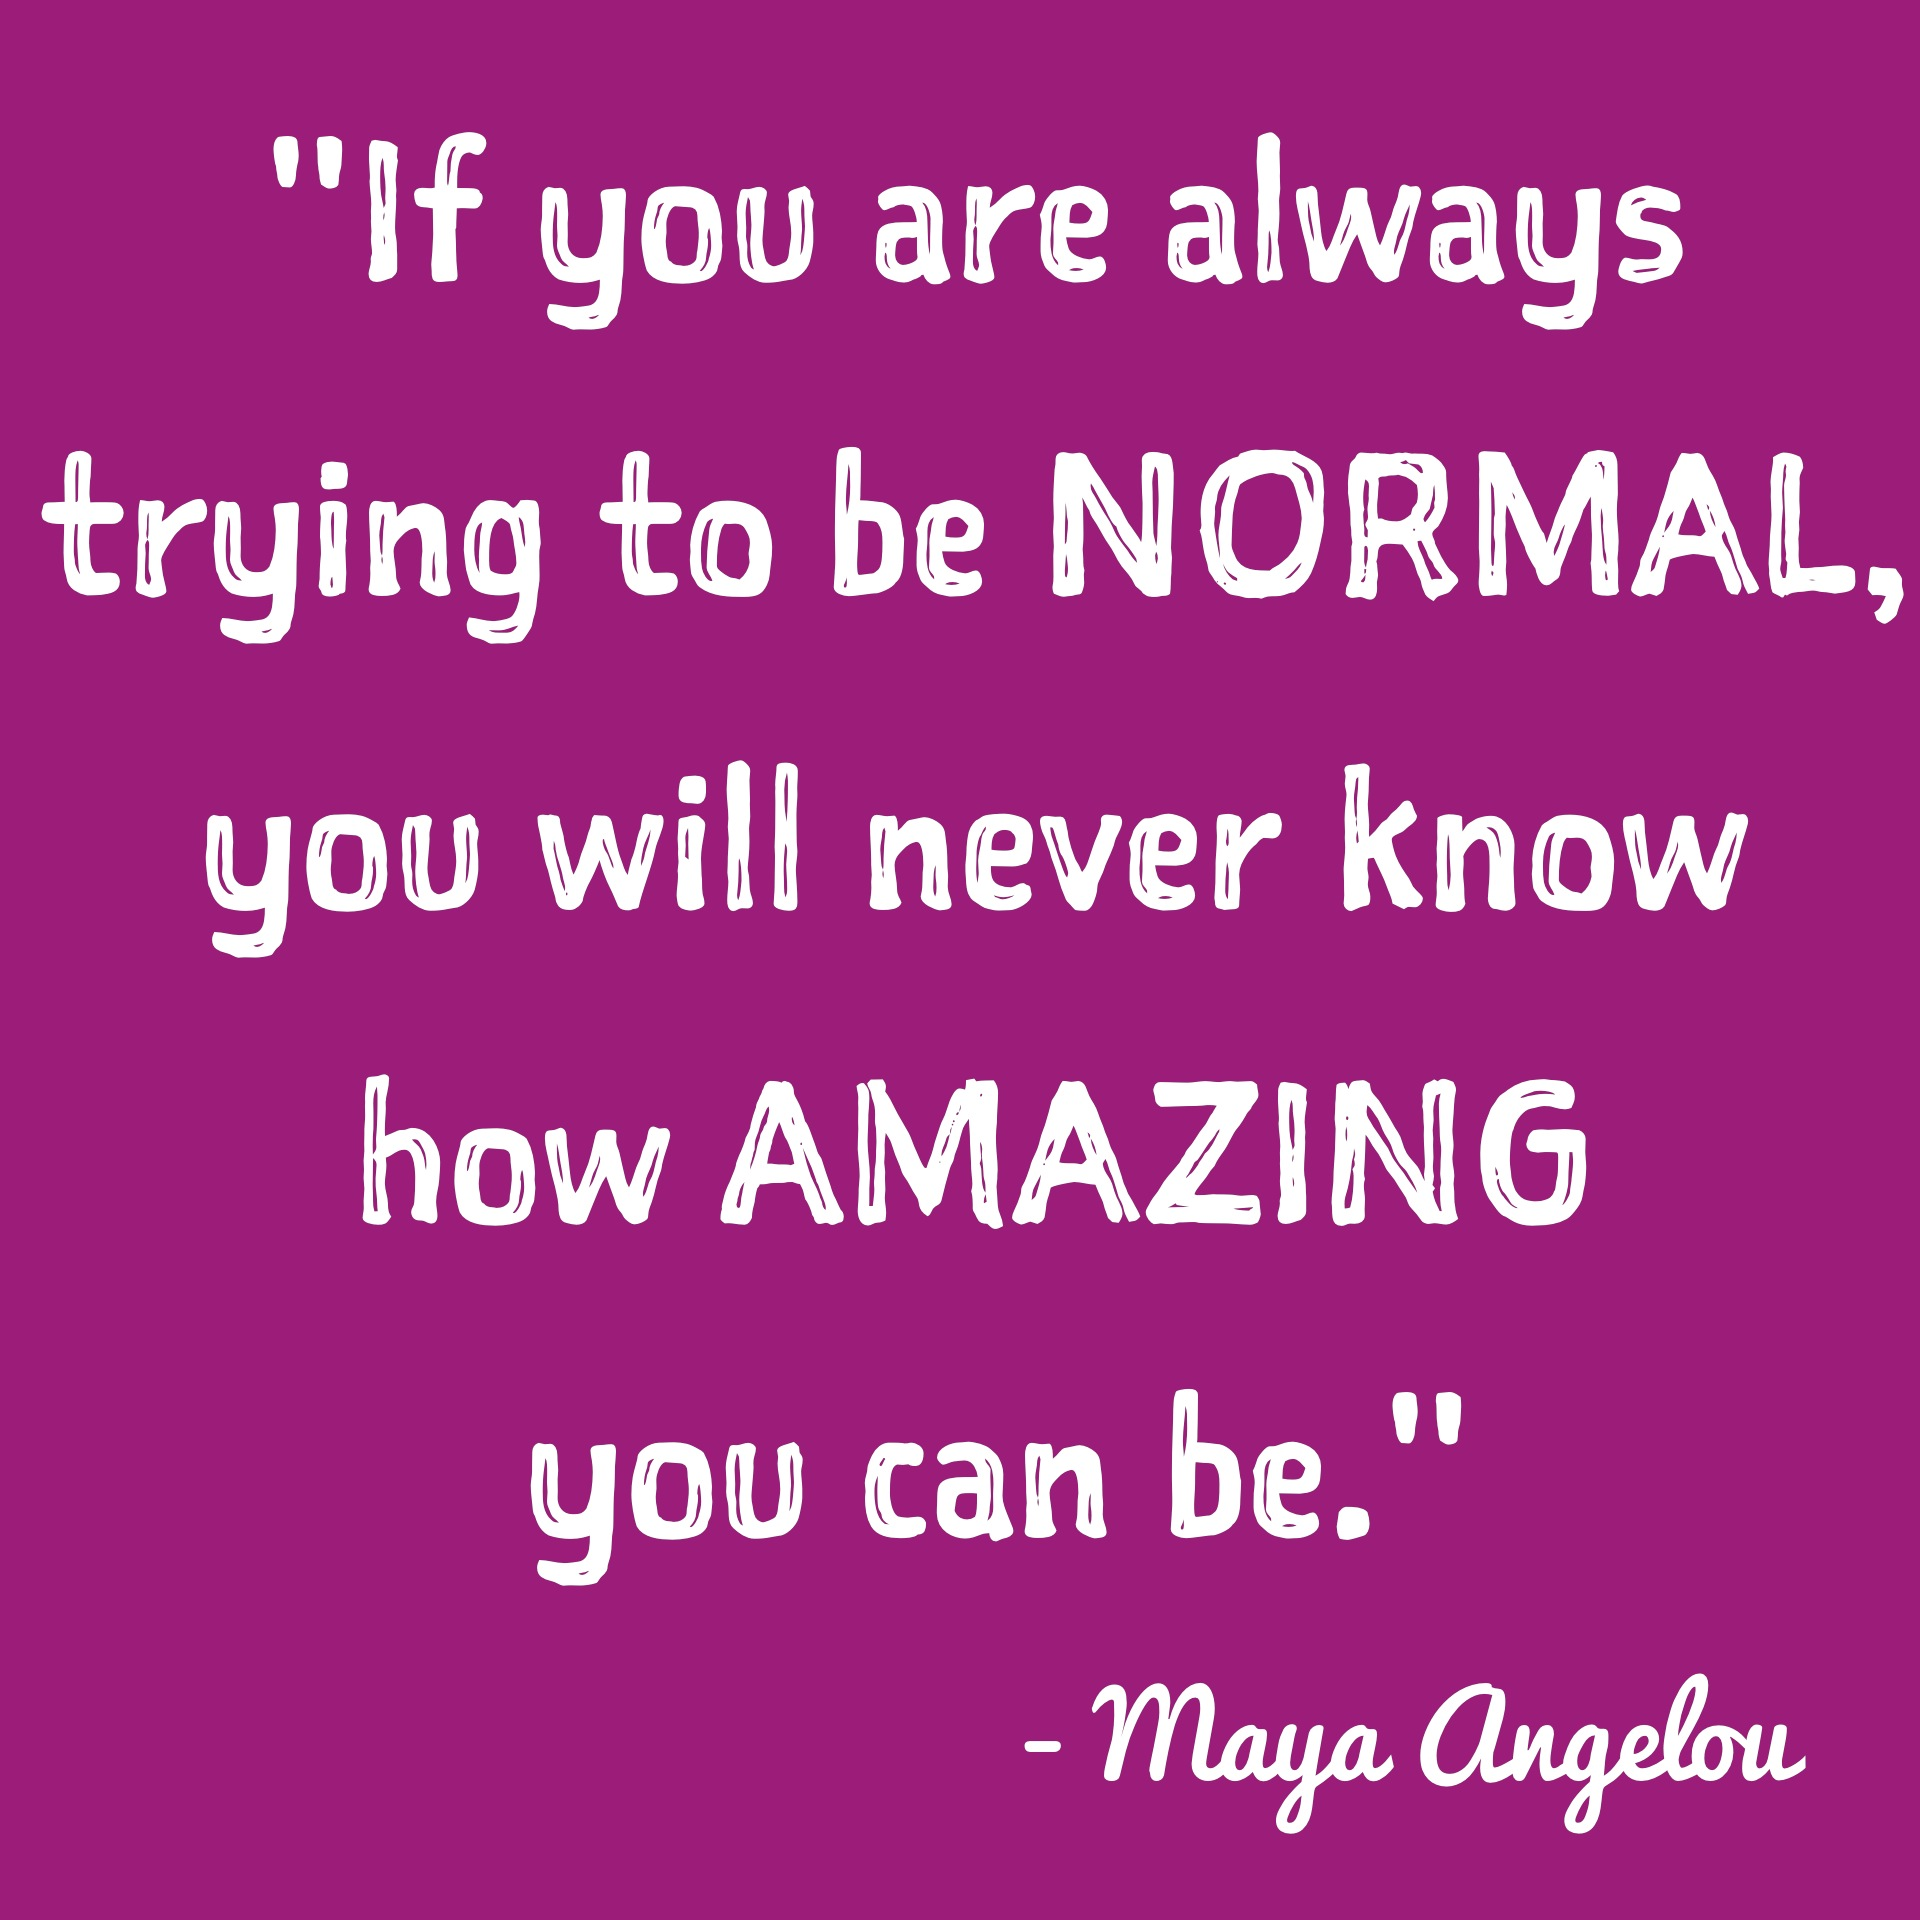 Amazing Quotes Top 13 Inspirational Quotes Of 2014  11 Normal Is Not Amazing